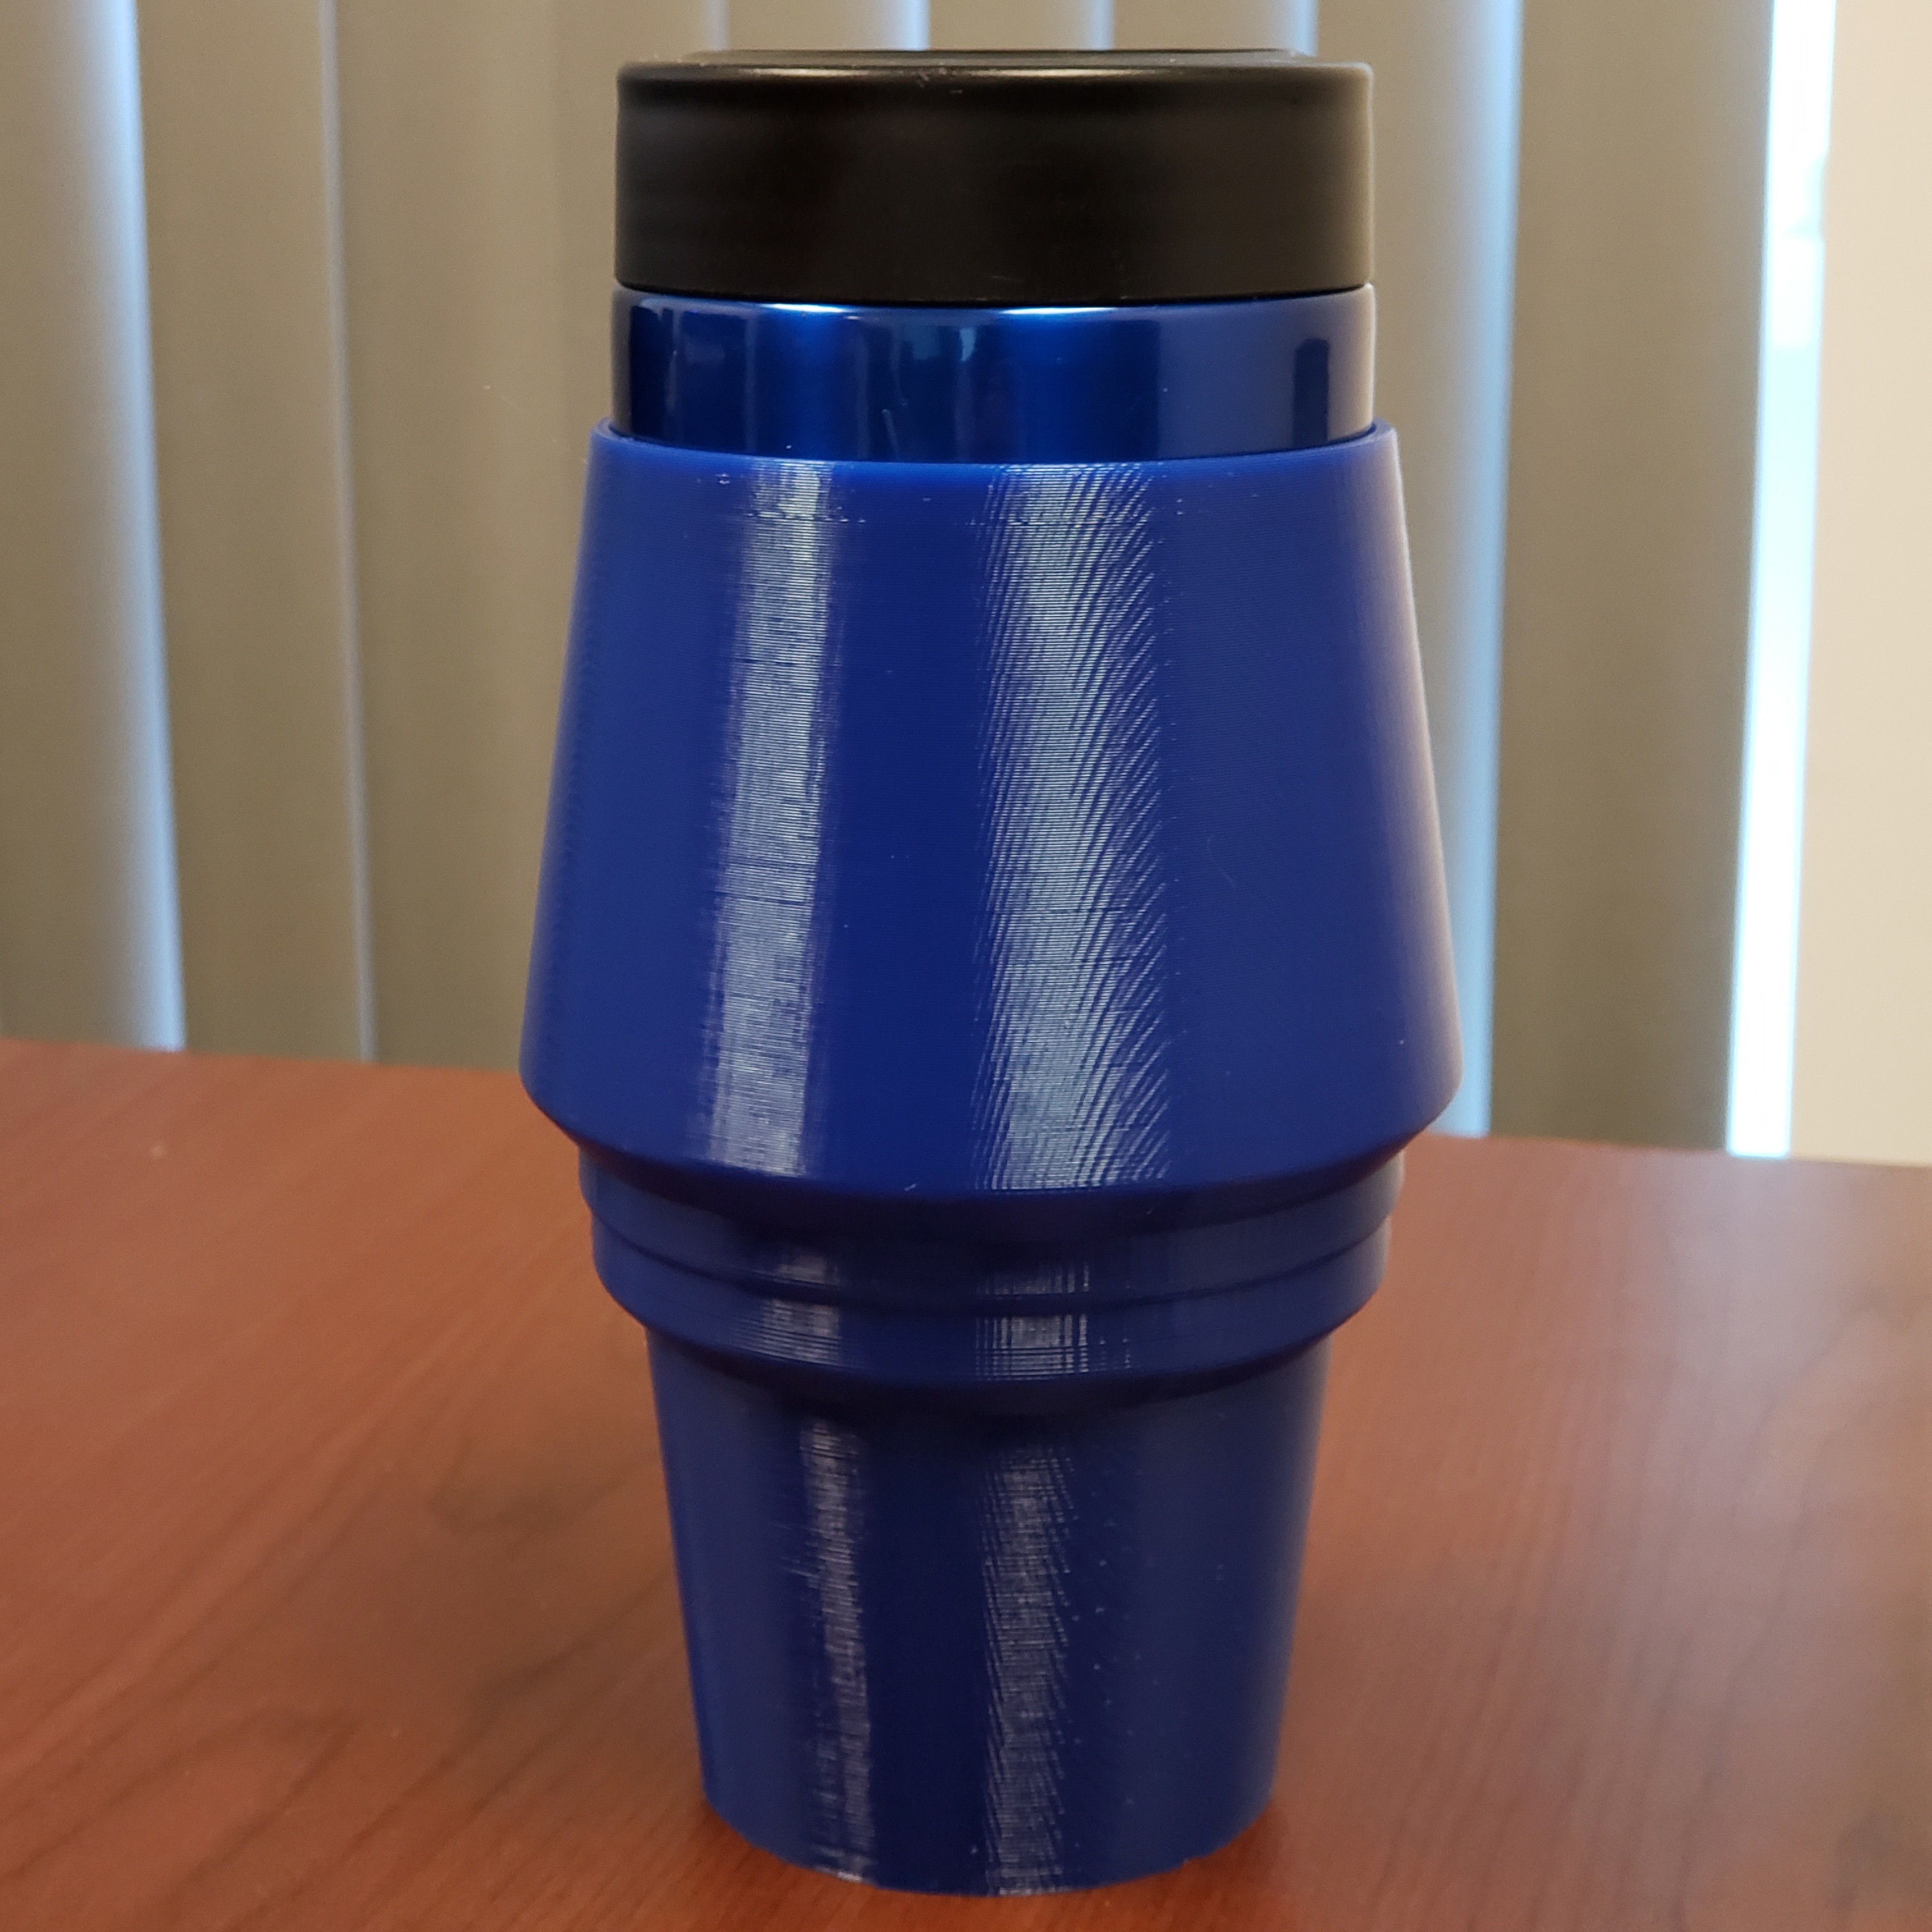 20180817_080356.jpg Download free STL file Yeti Rambler Colster Koozie Cup Holder Adapter • 3D printer object, ThatJoshGuy